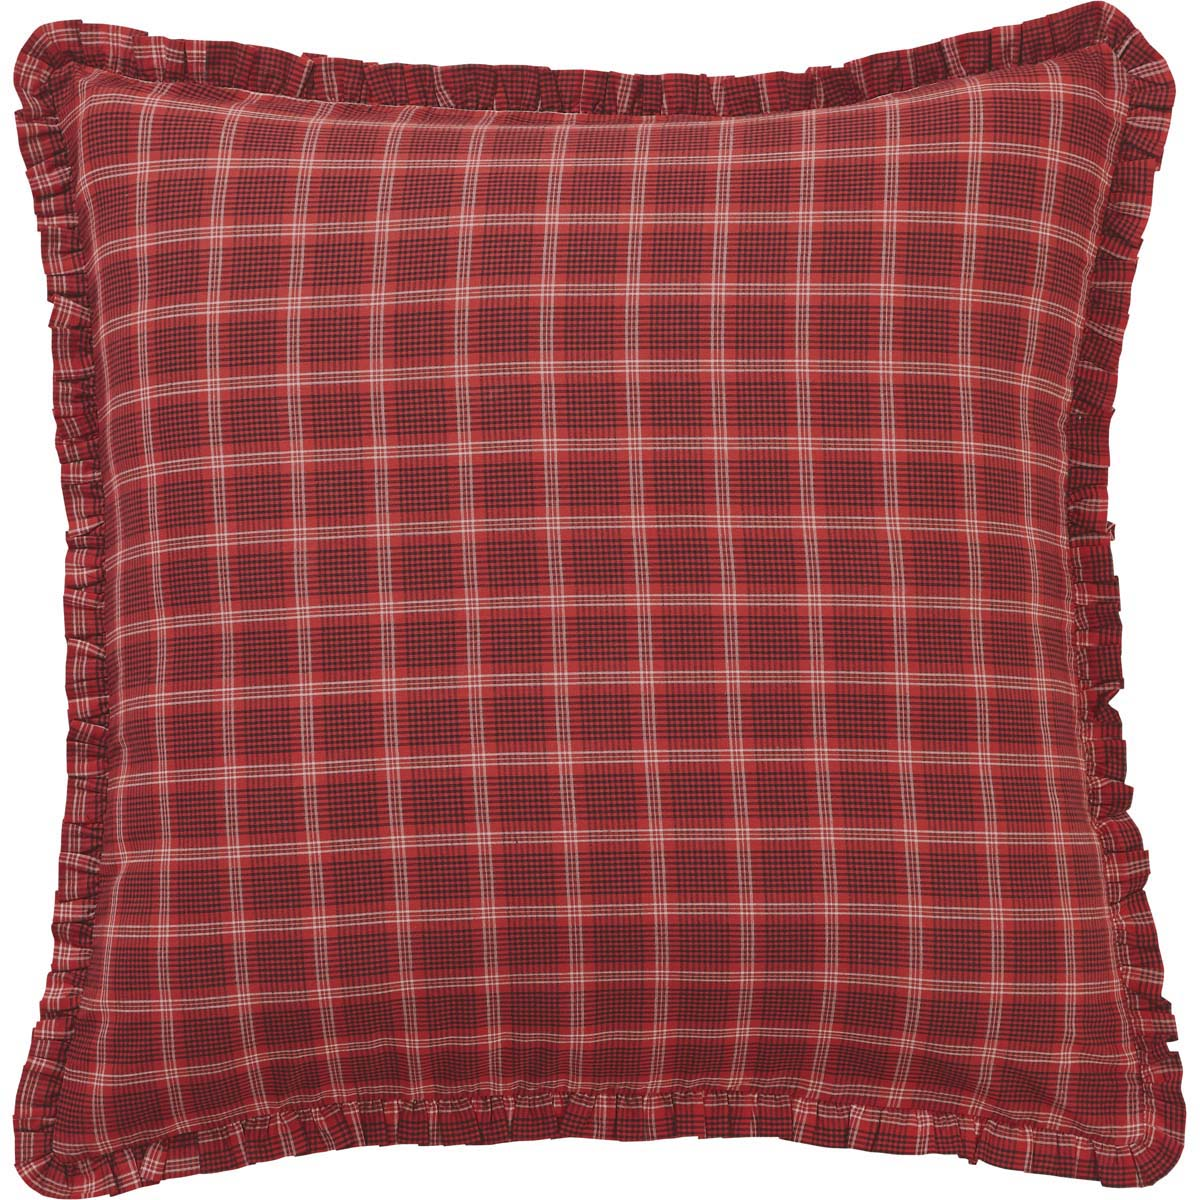 Americana Red Primitive Bedding Liberty Stars Cotton Plaid Euro Sham